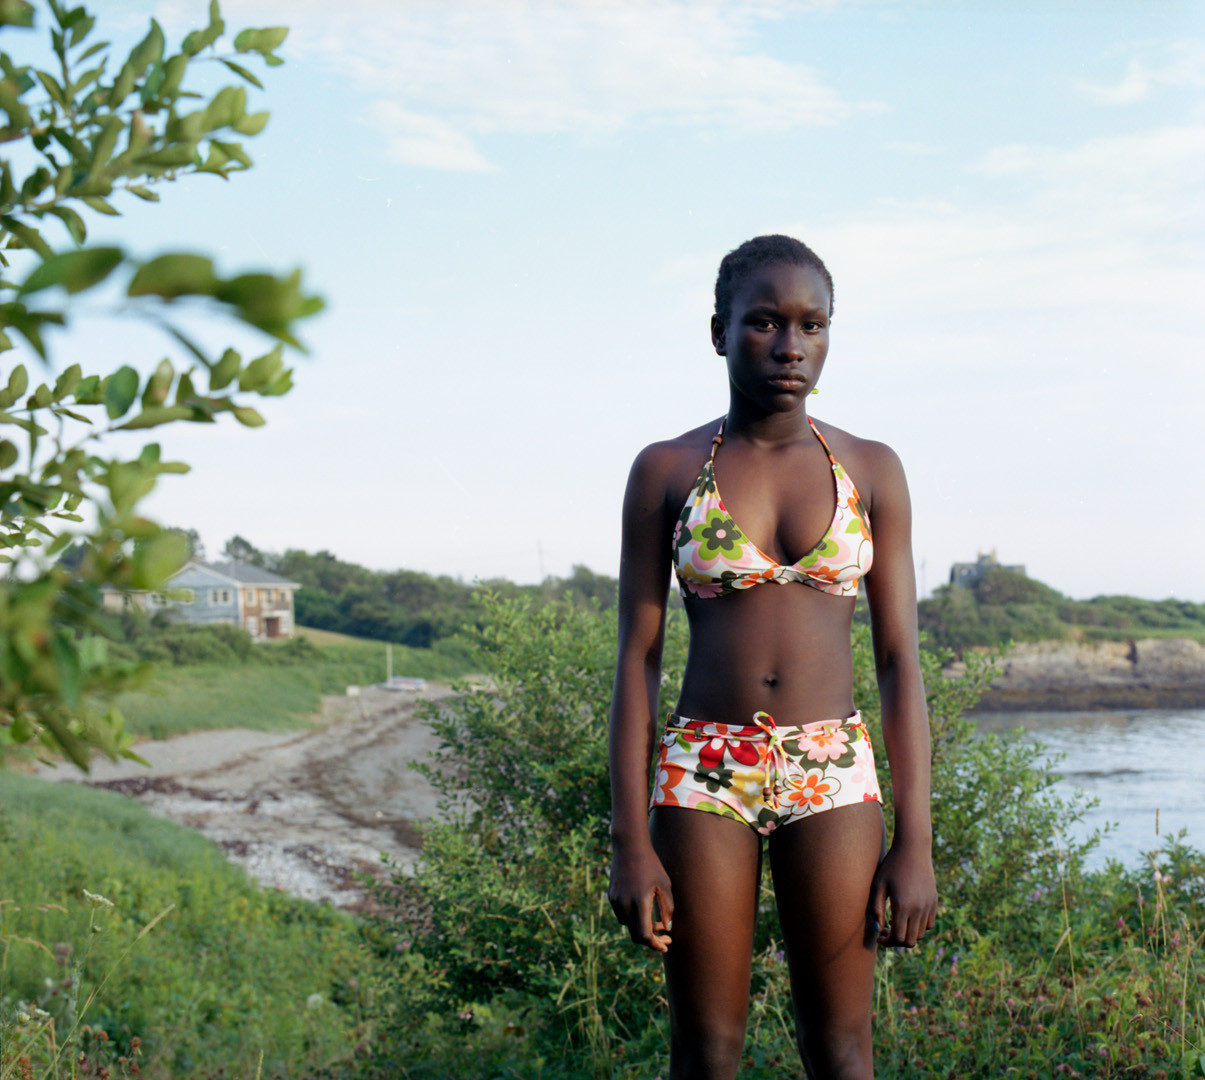 Jocelyn Lee, Untitled (Julia standing at Kettle Cove), 2005